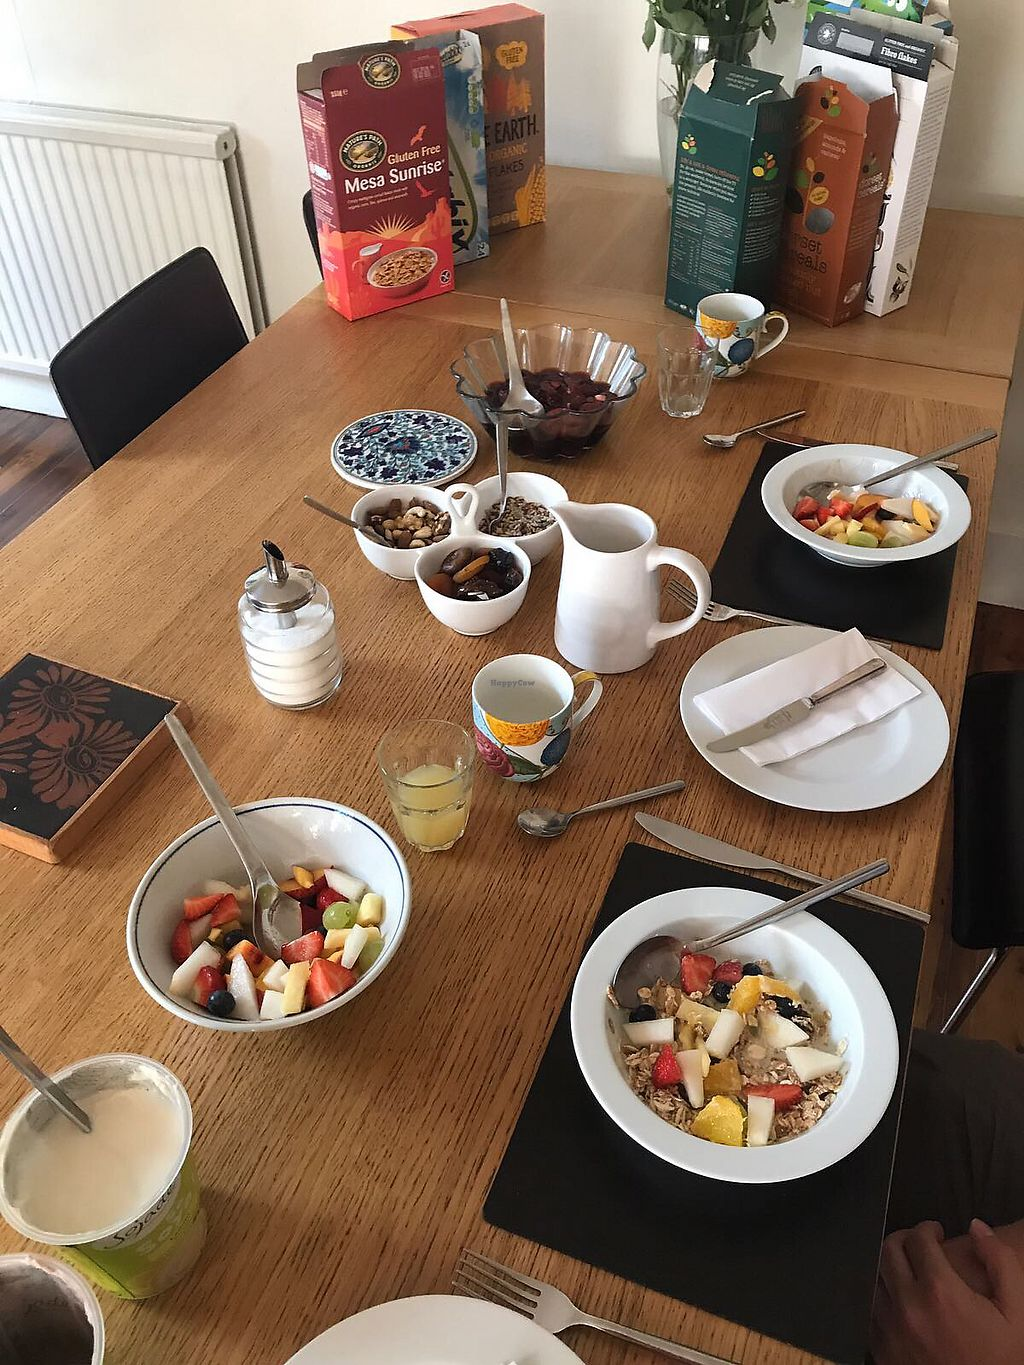 "Photo of Brighton Vegetarian Bed and Breakfast  by <a href=""/members/profile/papryczka"">papryczka</a> <br/>That's how the breakfast begins. Then comes vegetarian or vegan version of full English breakfast, plenty of tea and toasts... Amazing!  <br/> September 14, 2017  - <a href='/contact/abuse/image/45665/304394'>Report</a>"